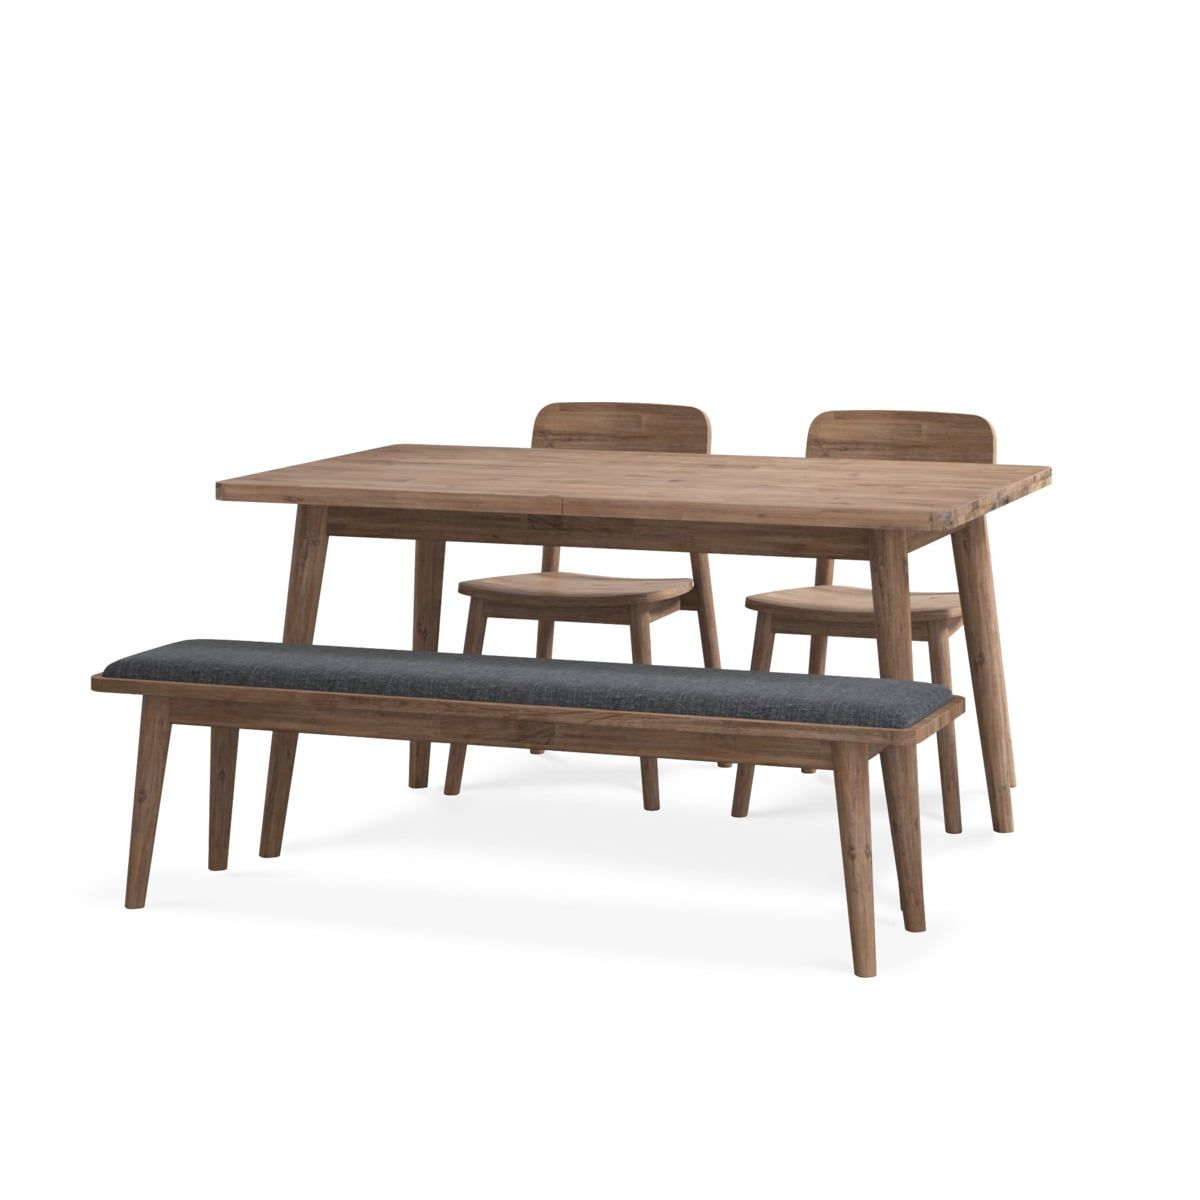 Seb Extendable Dining Table With Bench And 2 Chairs Dining Table